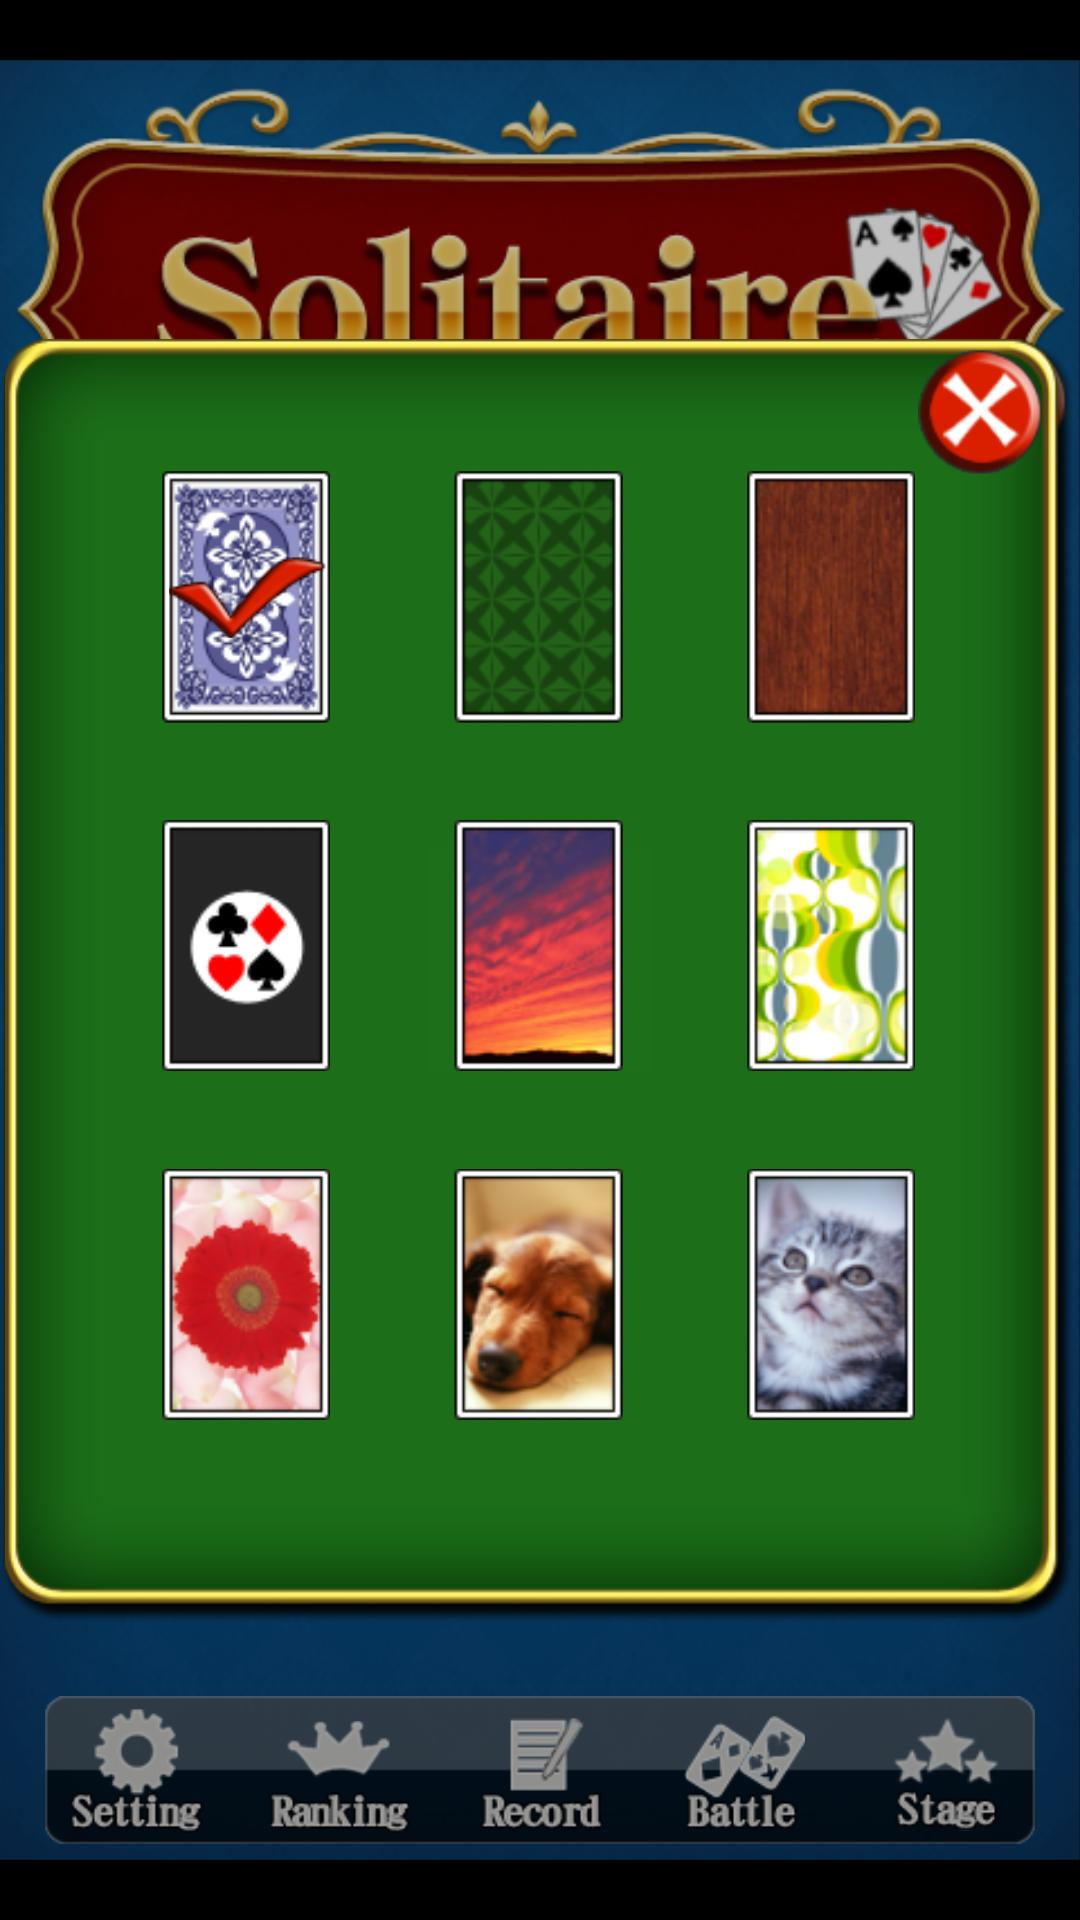 Solitaire 1.6.15 Screenshot 19